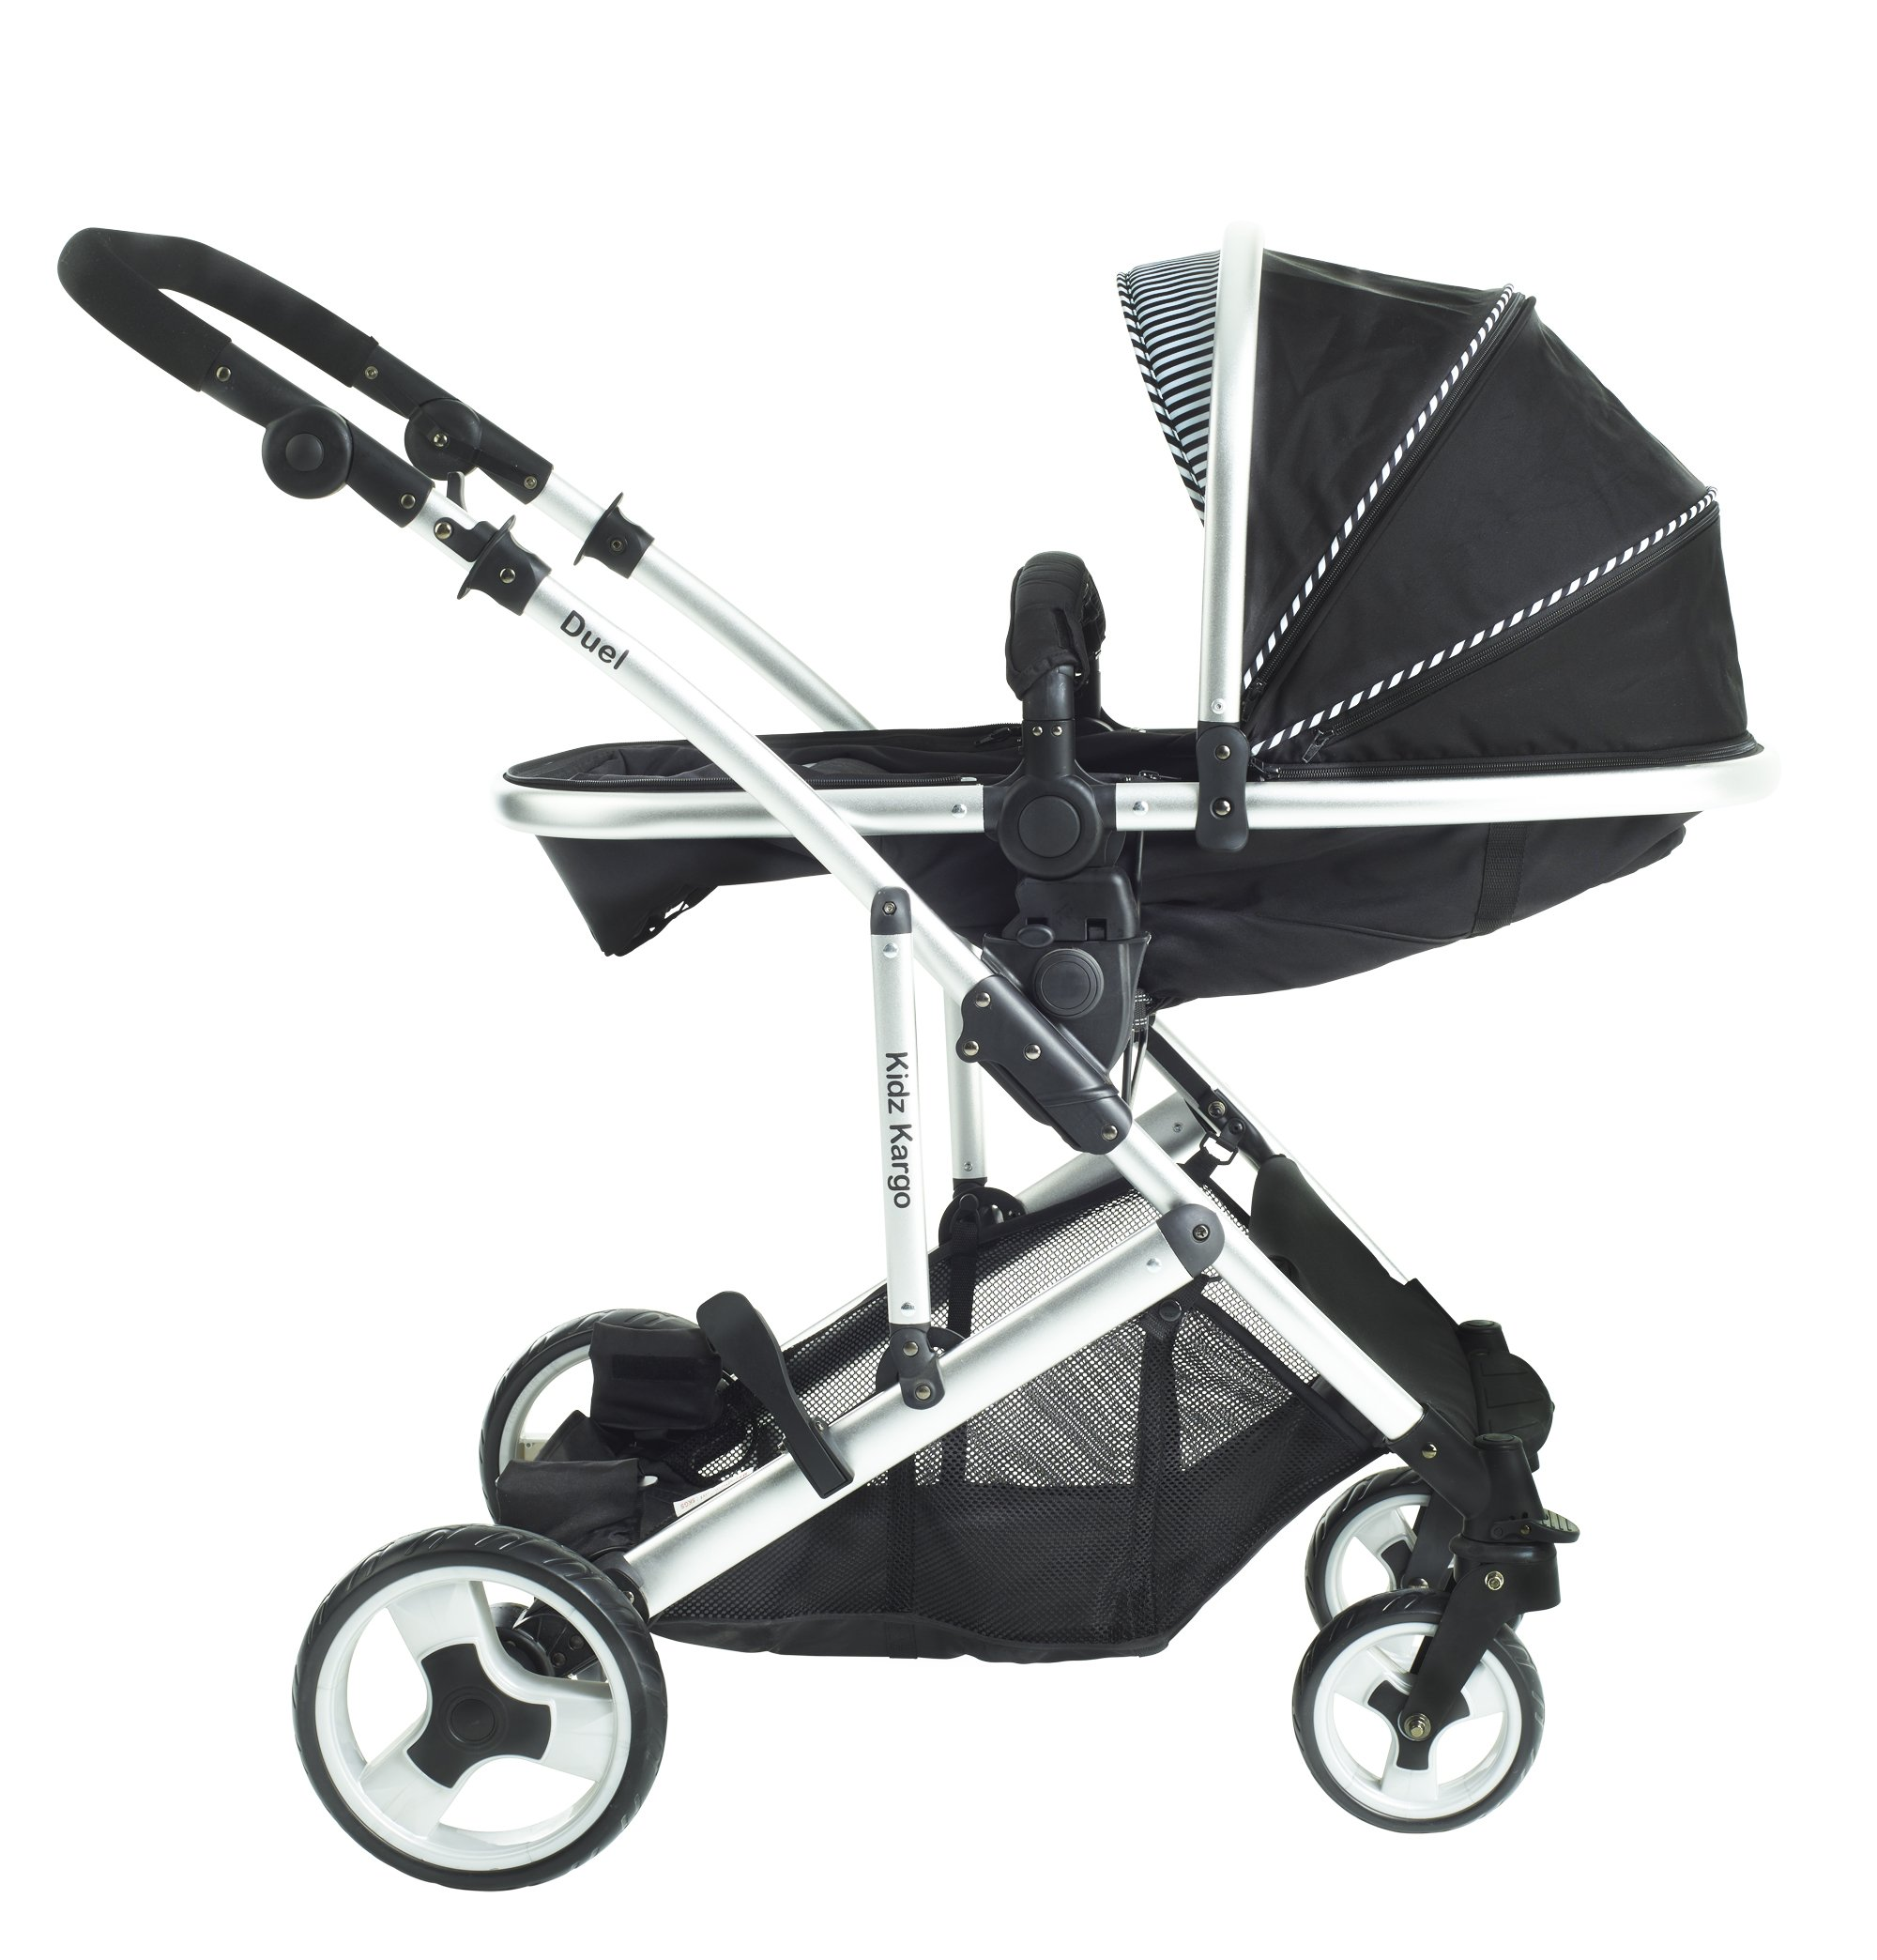 Duel combo Double pushchair with carrycot pram includes 2 FREE footmuffs Newborn & toddler, tandem travel system buggy convertible carrycot to seat unit and toddler/child seat unit, Midnight Black by Kids Kargo Kids Kargo The carrycot when converted to seat unit, can be rear or forward facing. Versatile. Suitable for Newborn and toddler: Carrycot with mattress and soft lining, which zip off. Remove lining and lid, when baby grows out of carrycot mode. Converts to a full sized seat unit, with 5 point harness. Bucket seat unit for toddler or baby over 6 months sits in forward facing bottom position , or forward and rear facing at the top, if car seat used at the bottom. 4